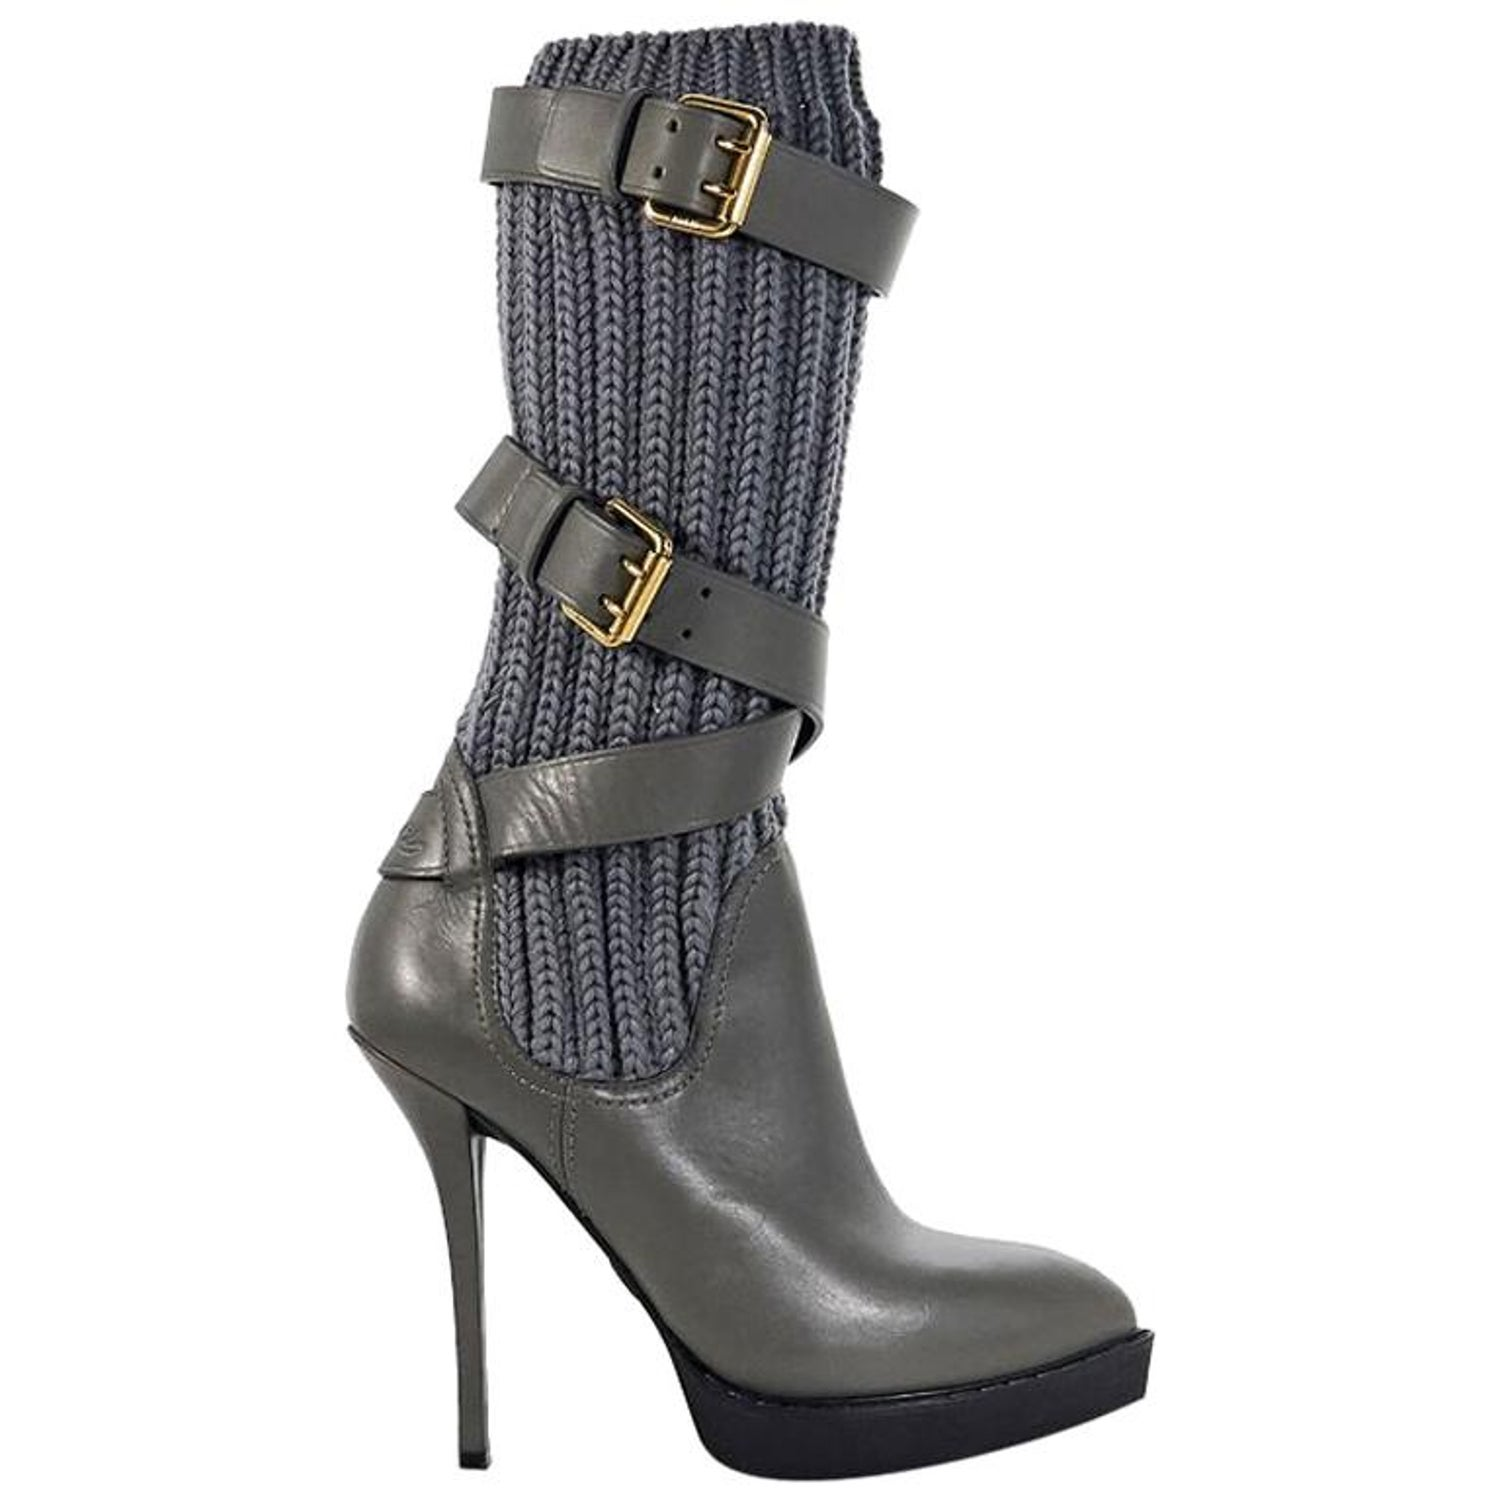 095162b63e Grey Gucci Leather and Knit Platform Boots For Sale at 1stdibs